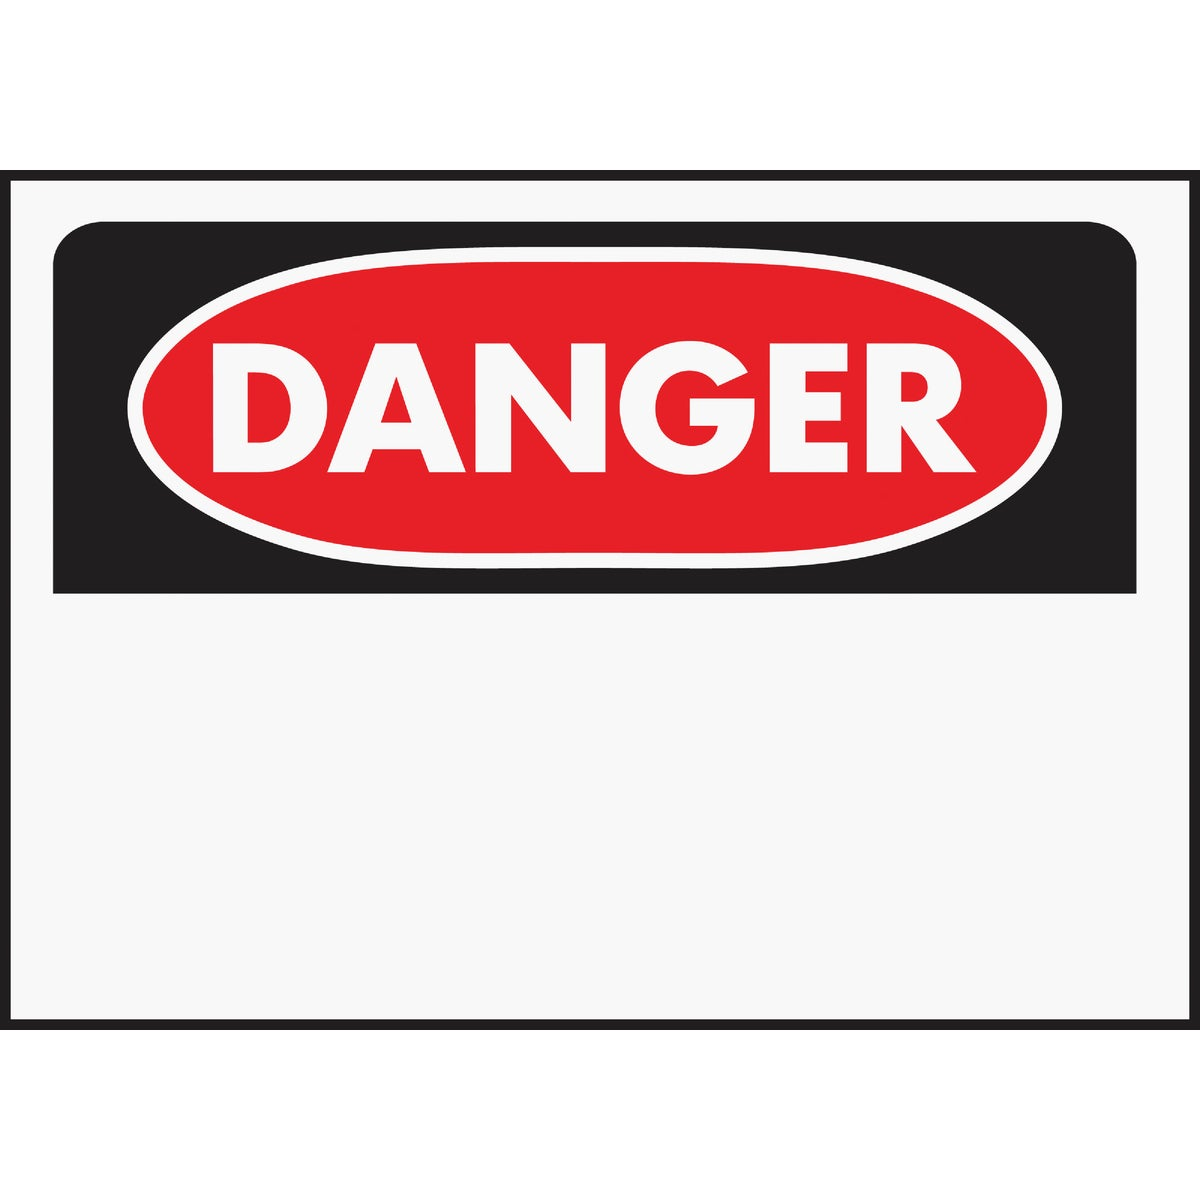 10X14 DANGER SIGN - 523 by Hy Ko Prods Co